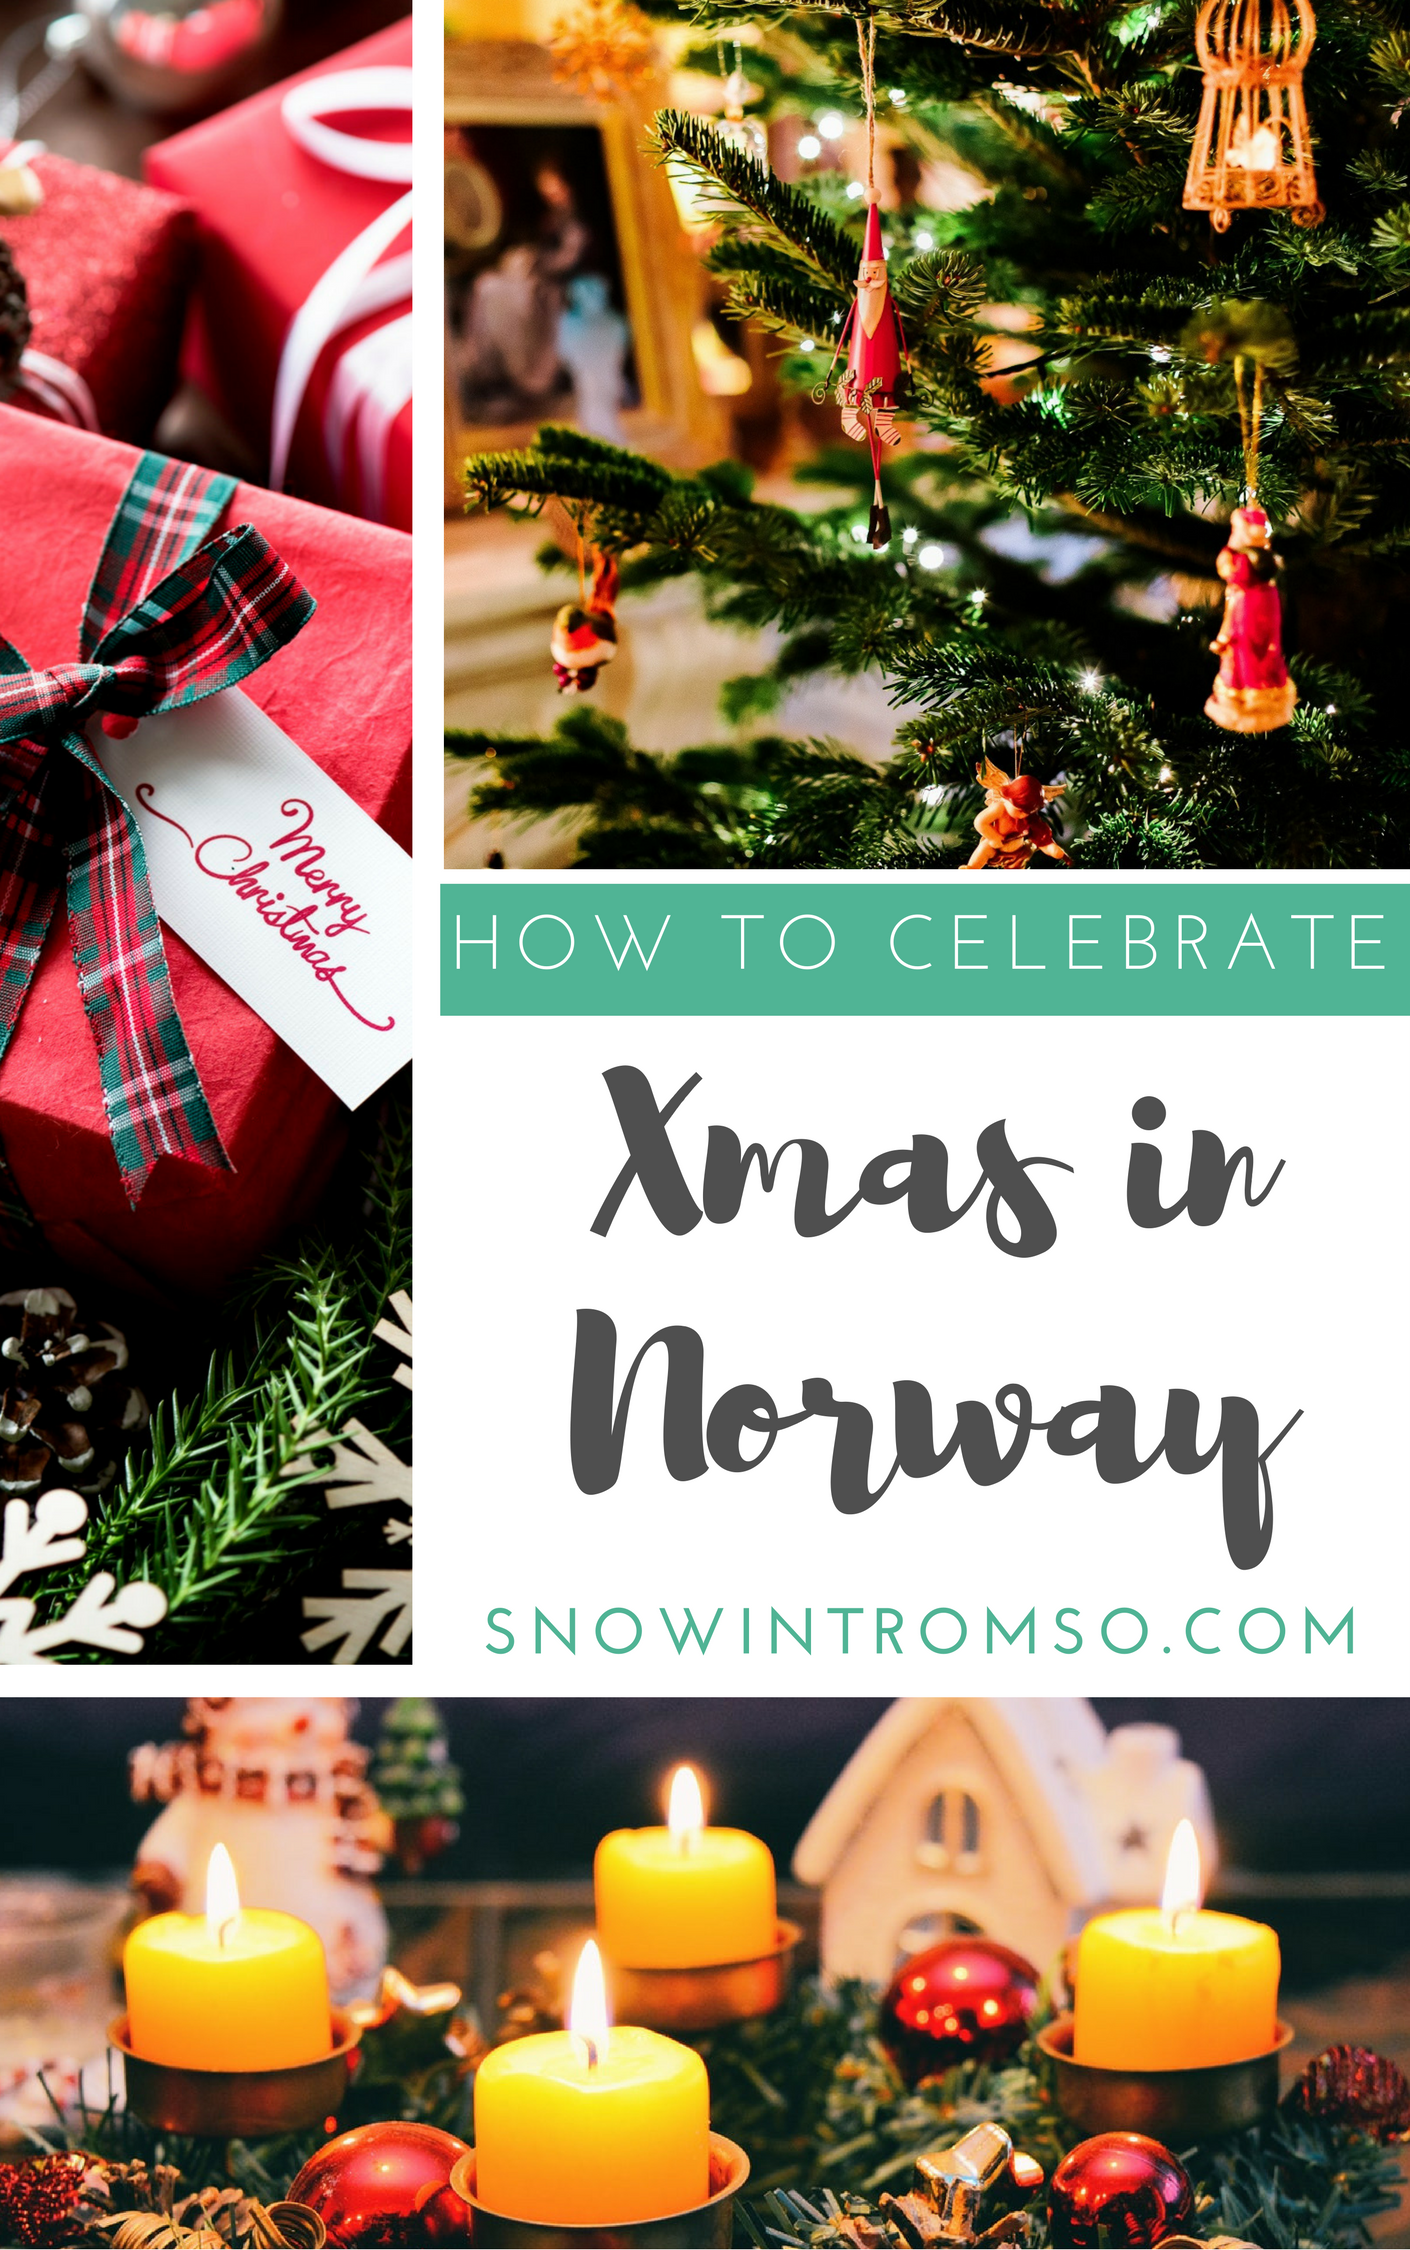 How to celebrate a proper Norwegian Christmas - click through to find out!